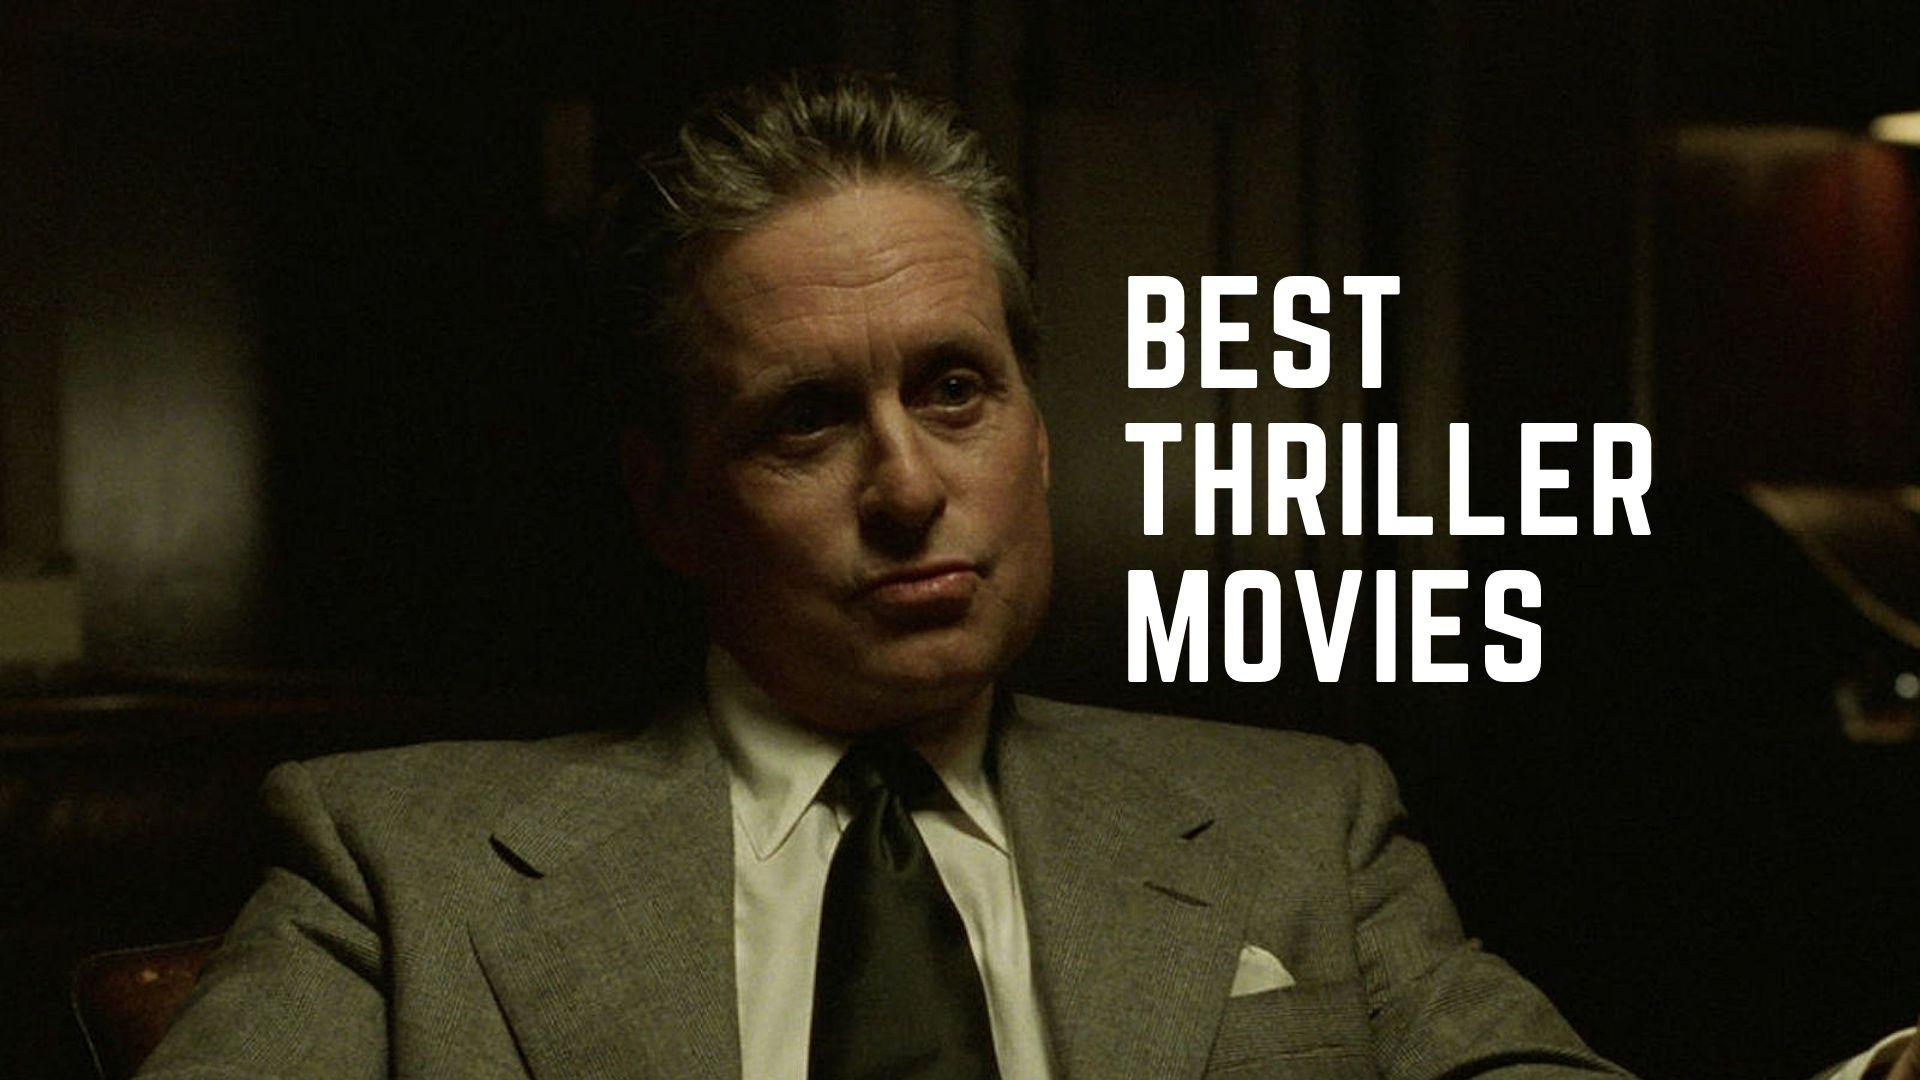 Top 10 thriller movies of Hollywood you must watch